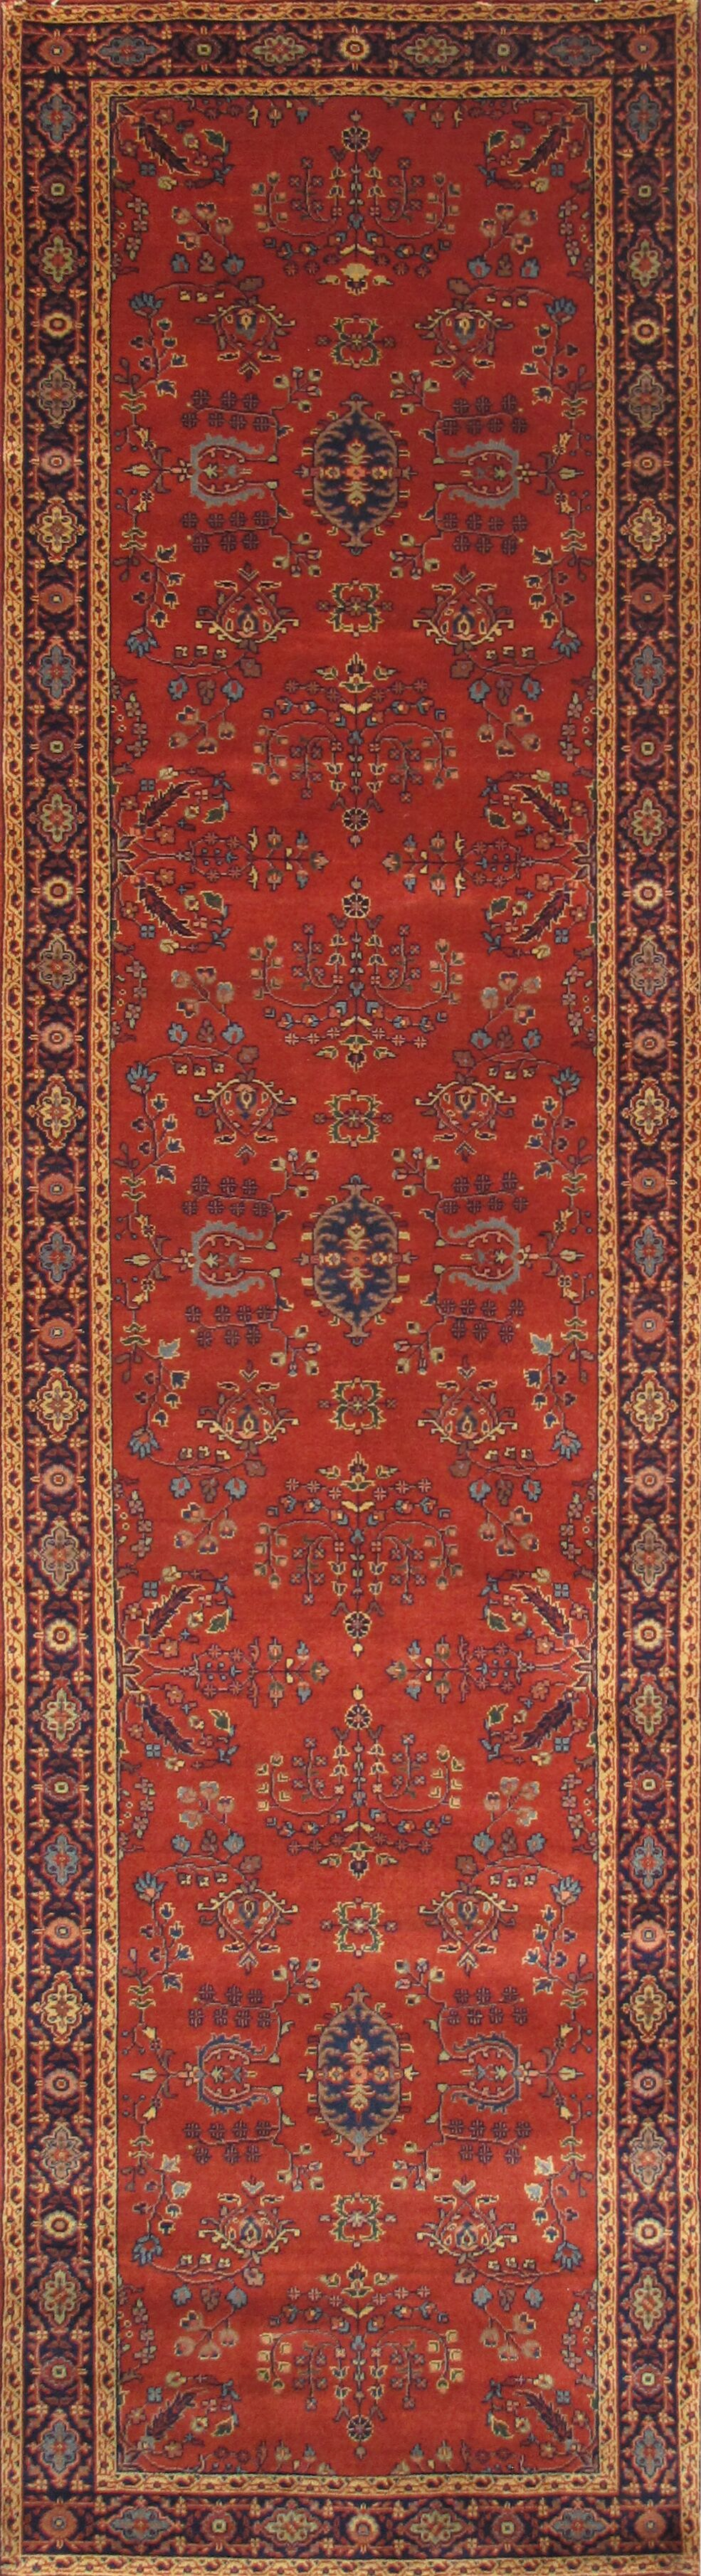 Sarouk Hand-Knotted Rust Area Rug Rug Size: Runner 2'6